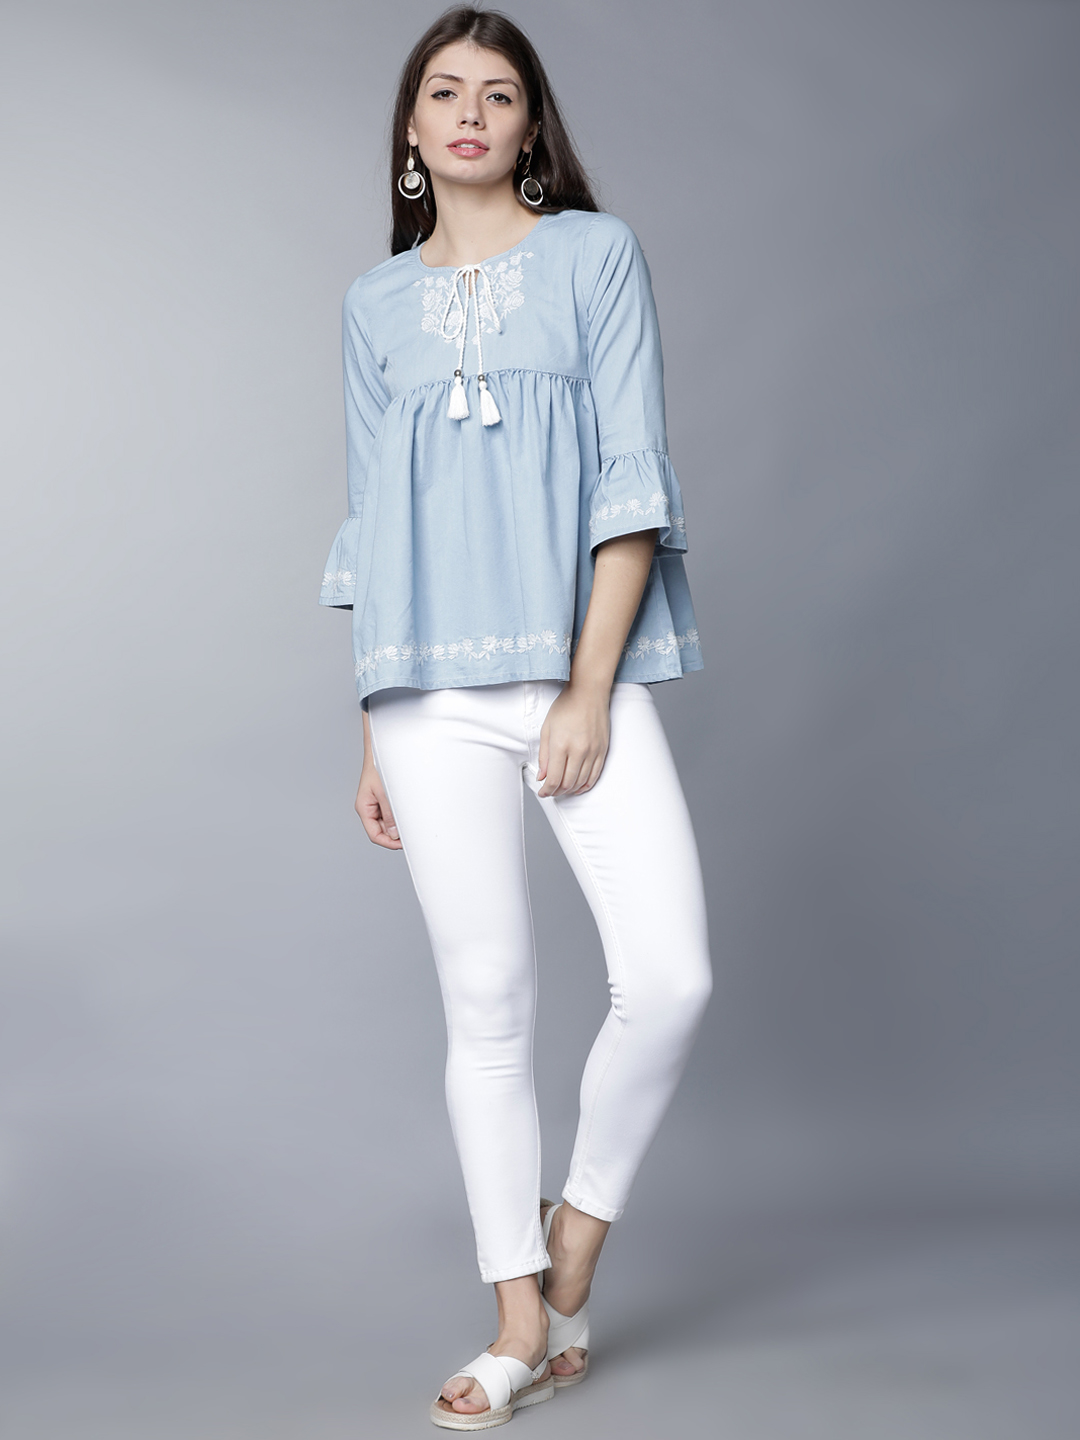 1-types-of-tops-Women-Blue-Embroidered-A-Line-Empire-Top